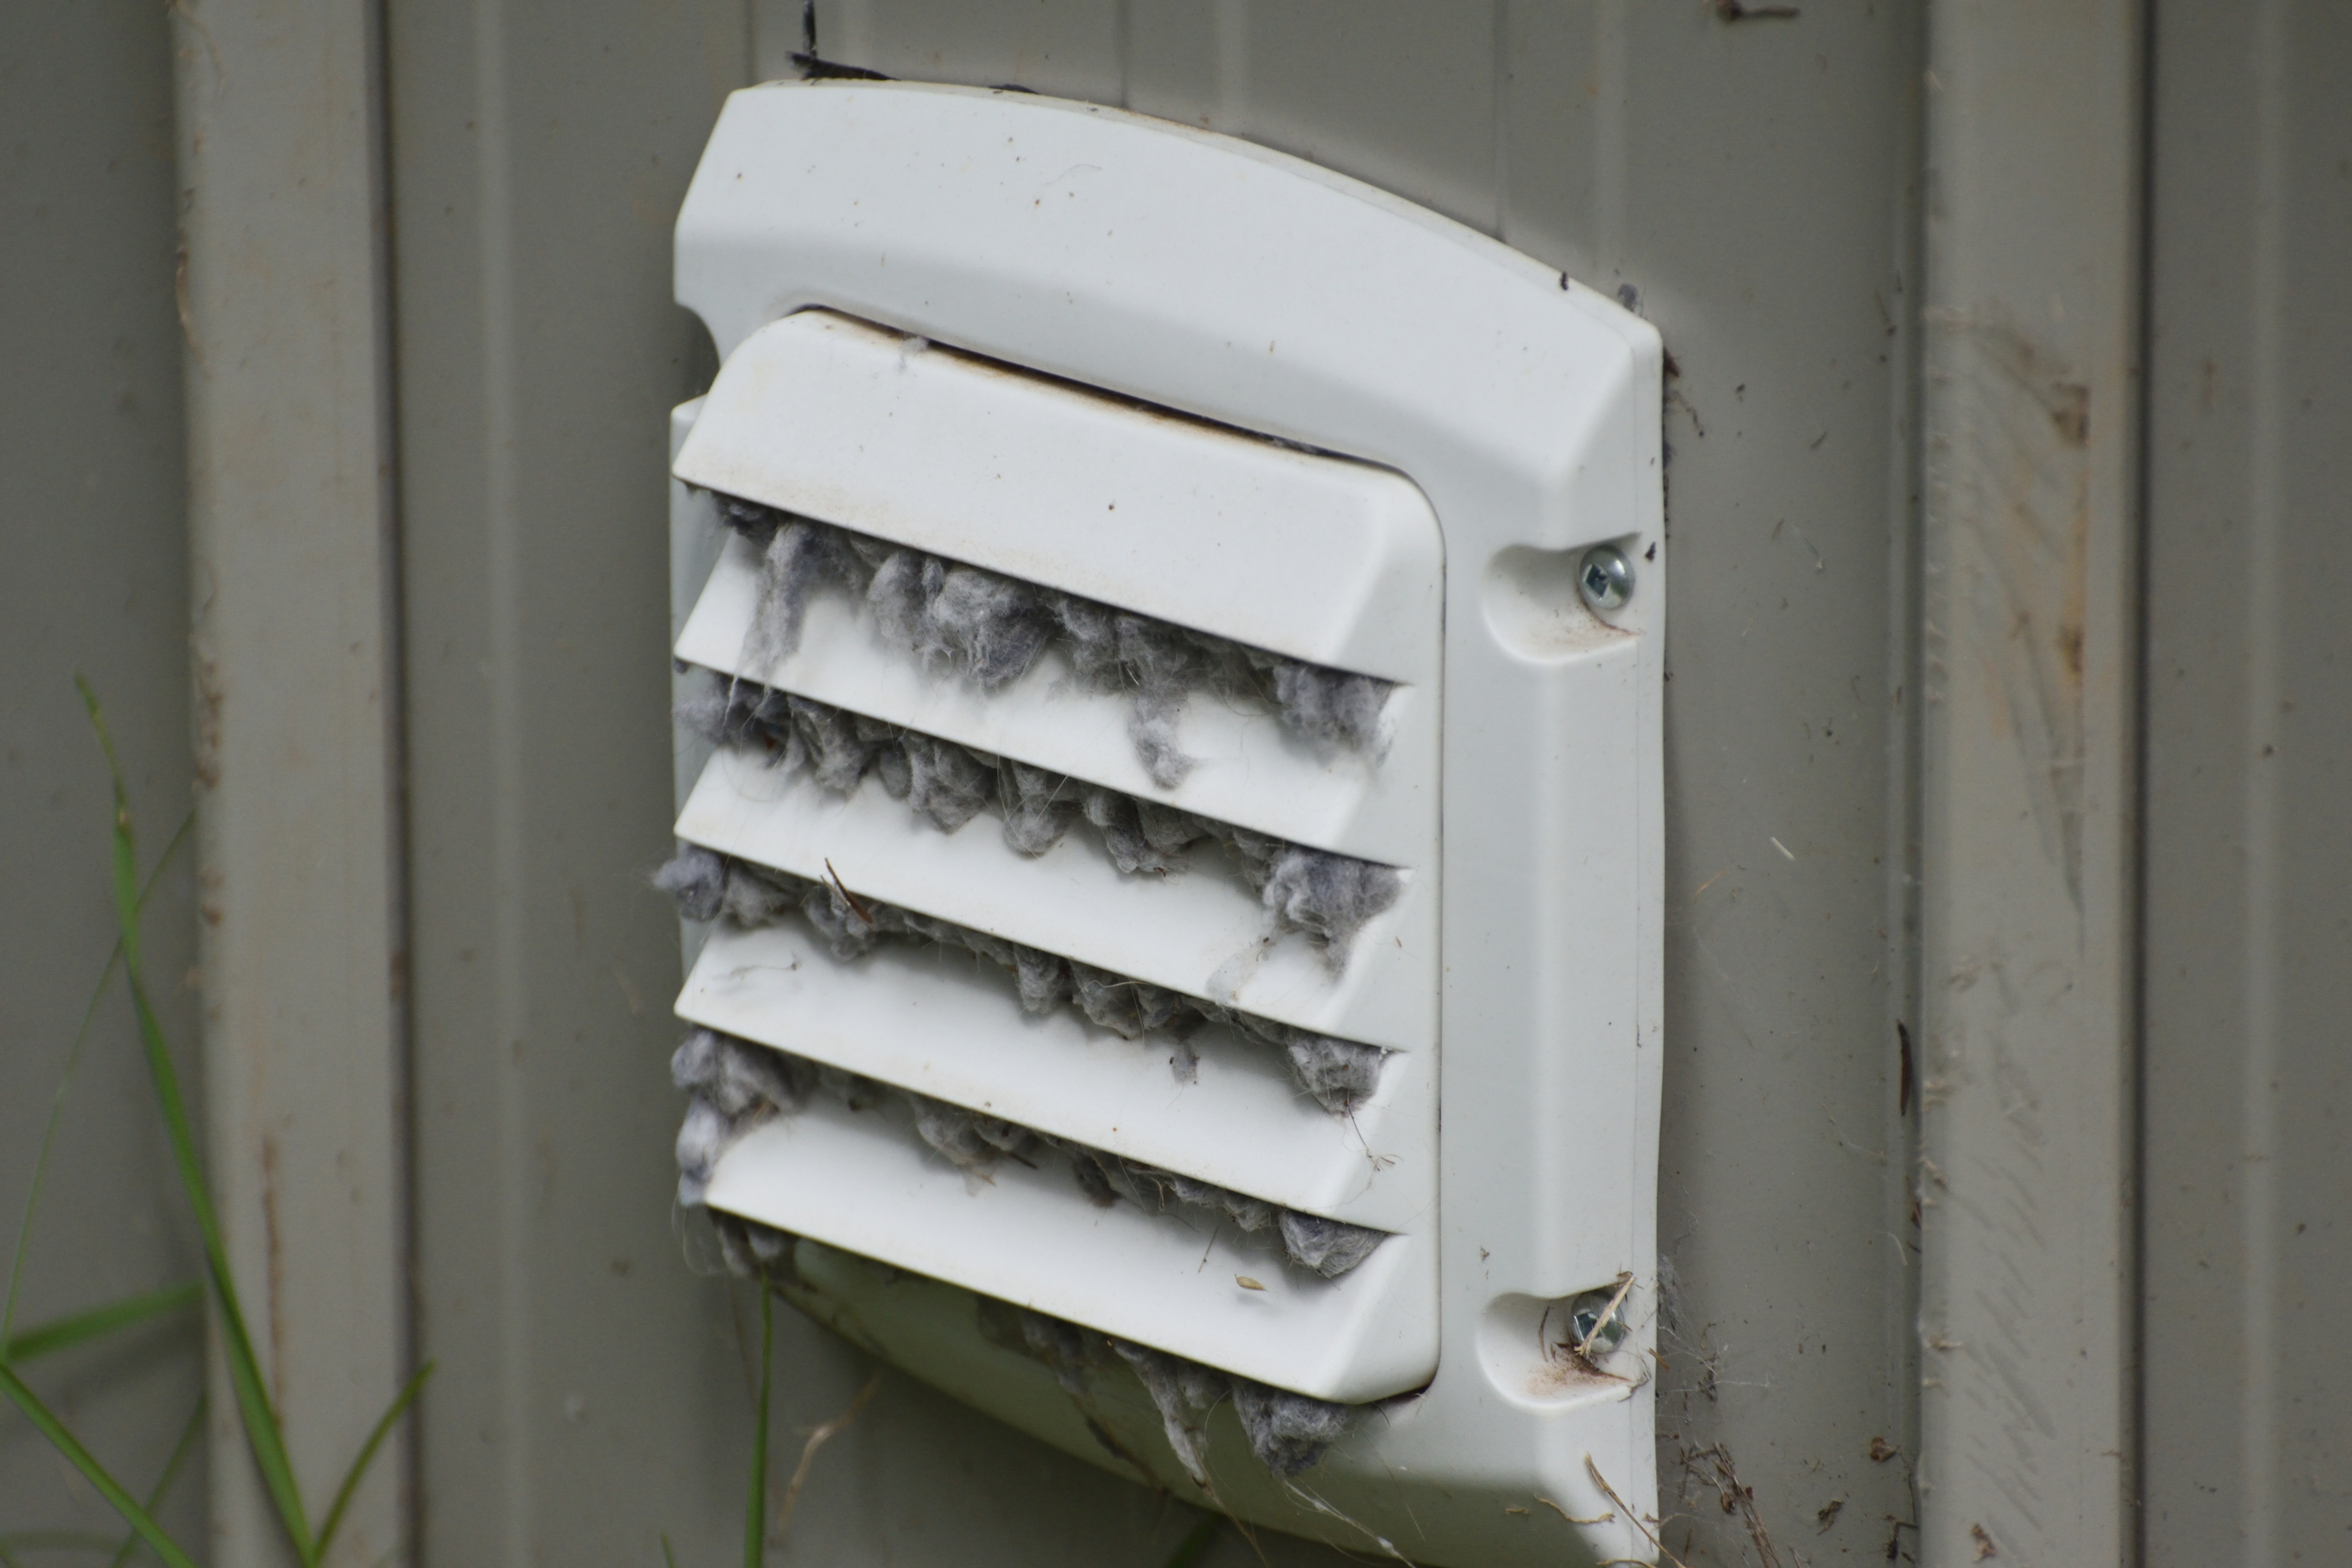 Do you regularly clean out your dryer vent? If not, you should! Here are the best tips to help you clean your dryer vent like a pro.